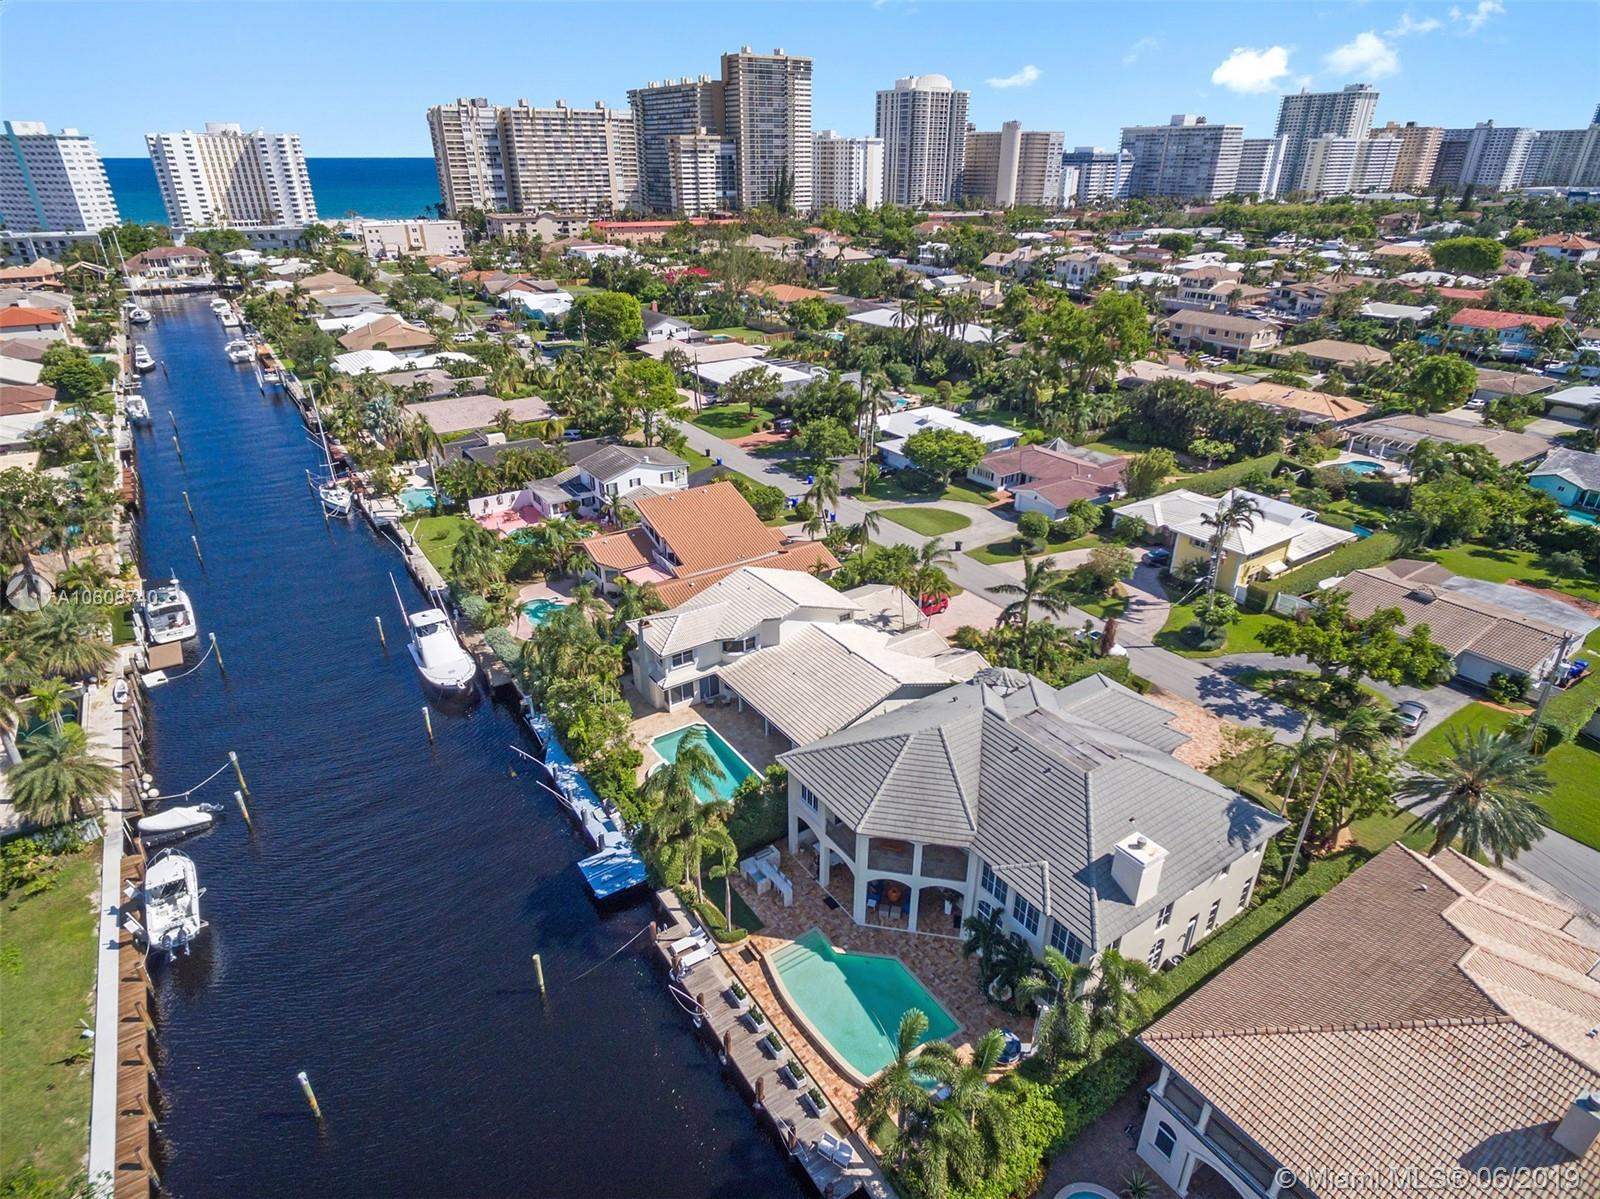 279 Codrington Dr, Lauderdale by the Sea, Florida